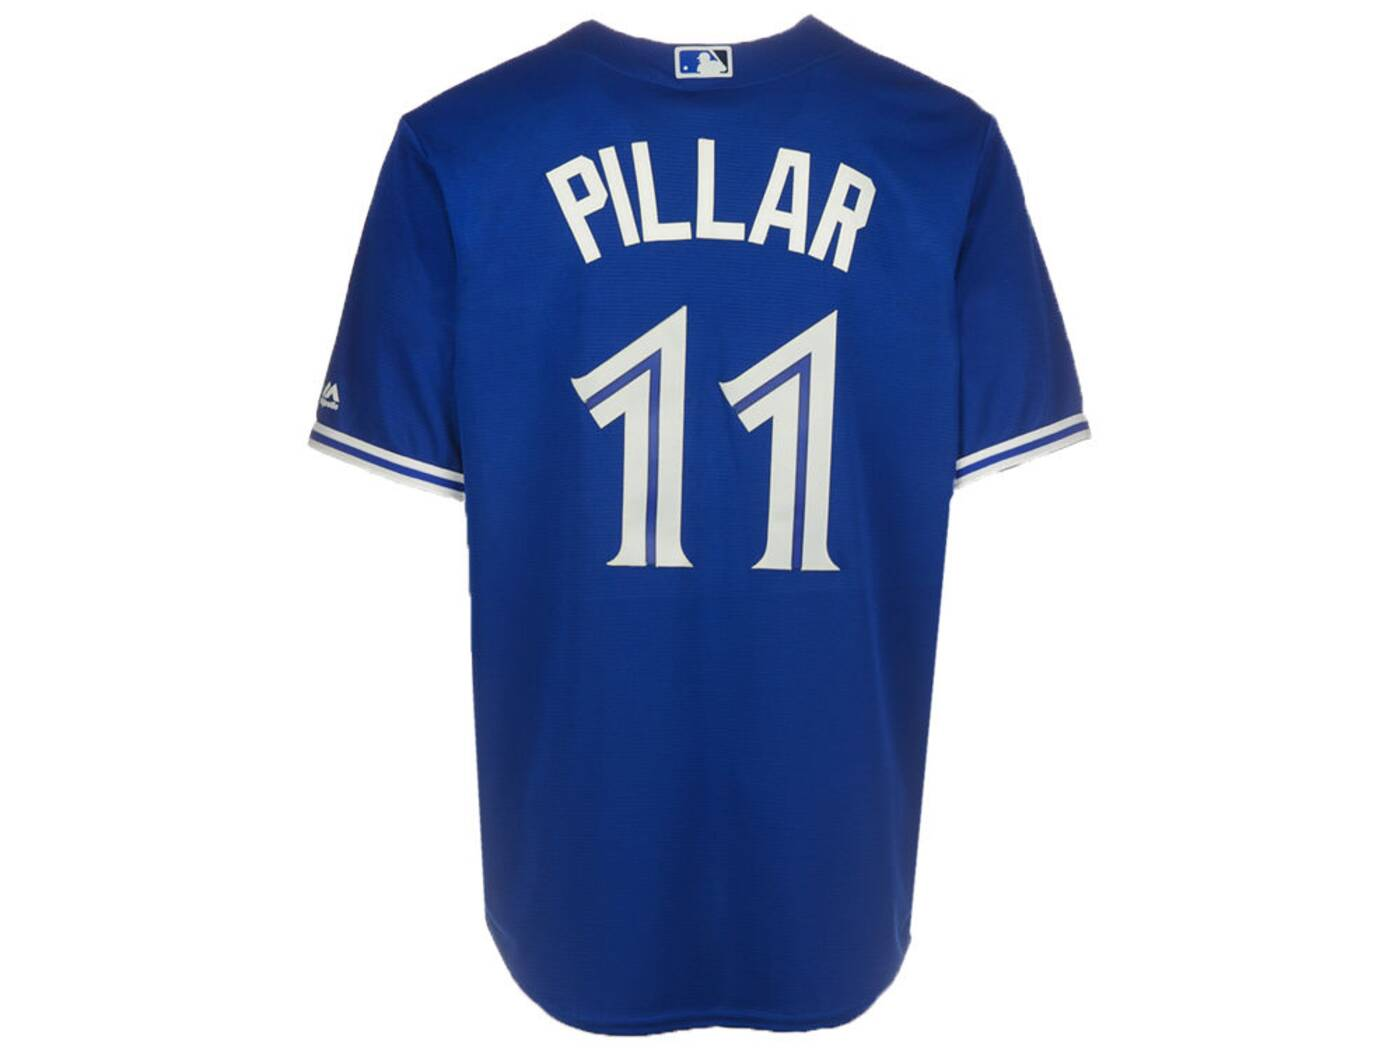 hot sale online f81bc 5a67b 10 stores to buy Blue Jays clothing in Toronto